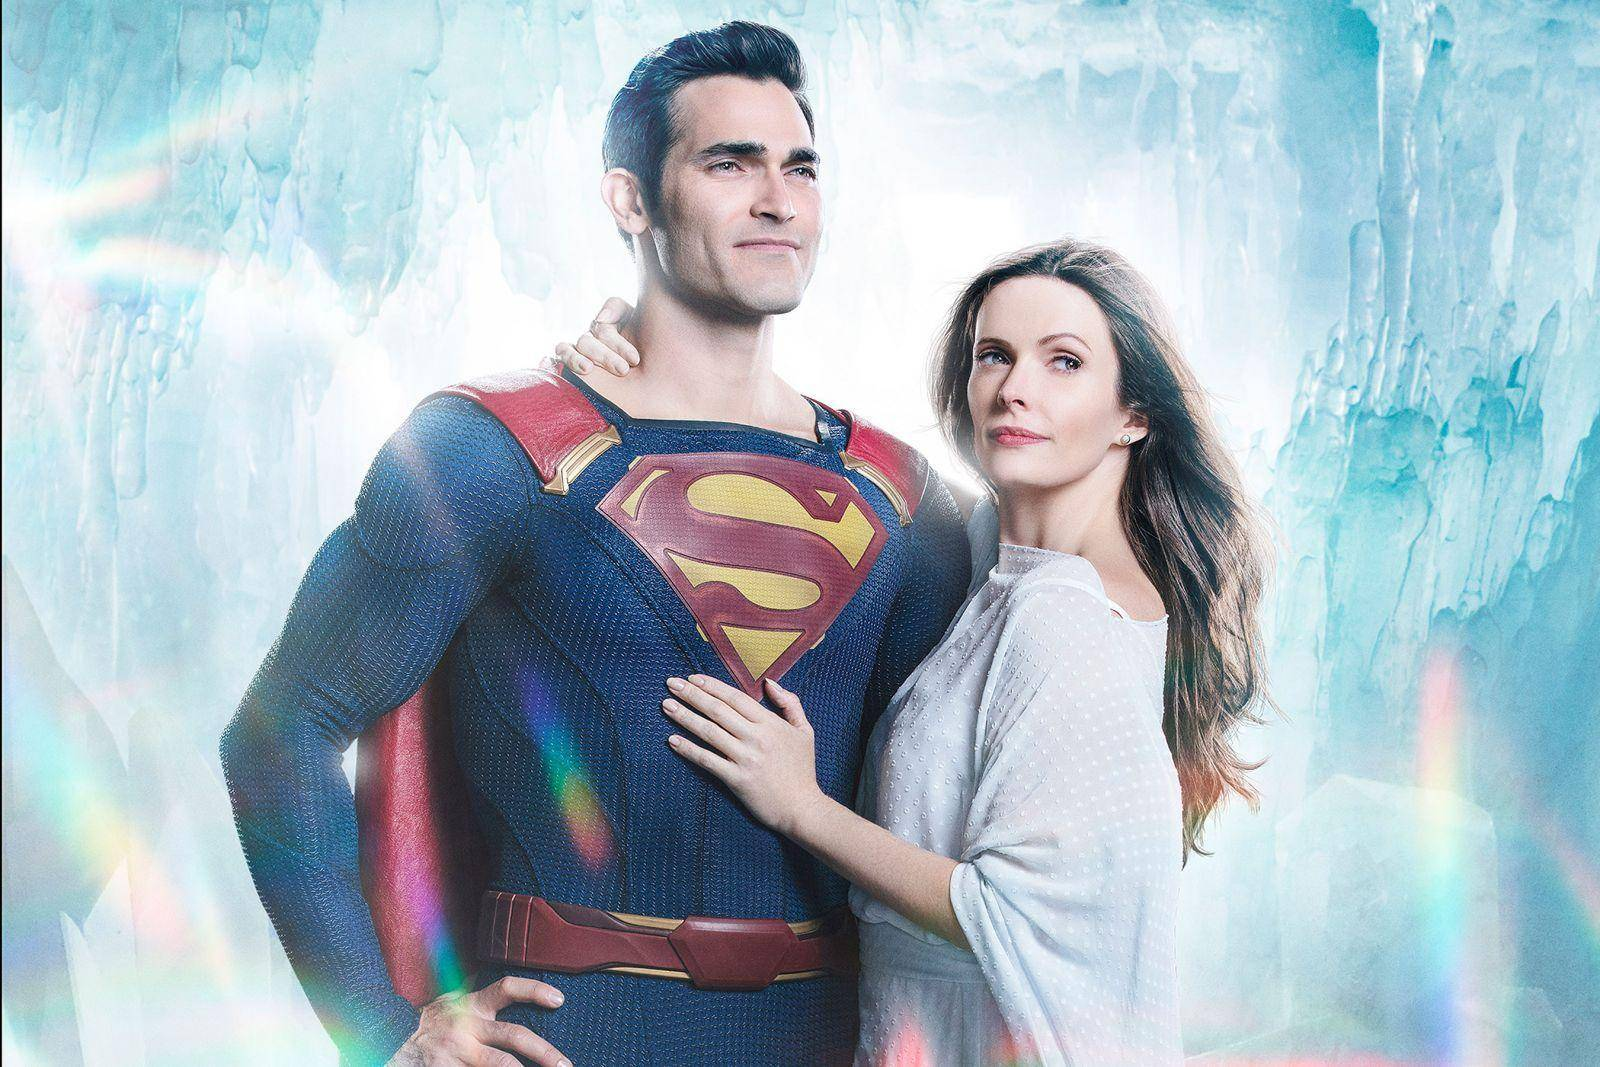 Superman, Arrowverse